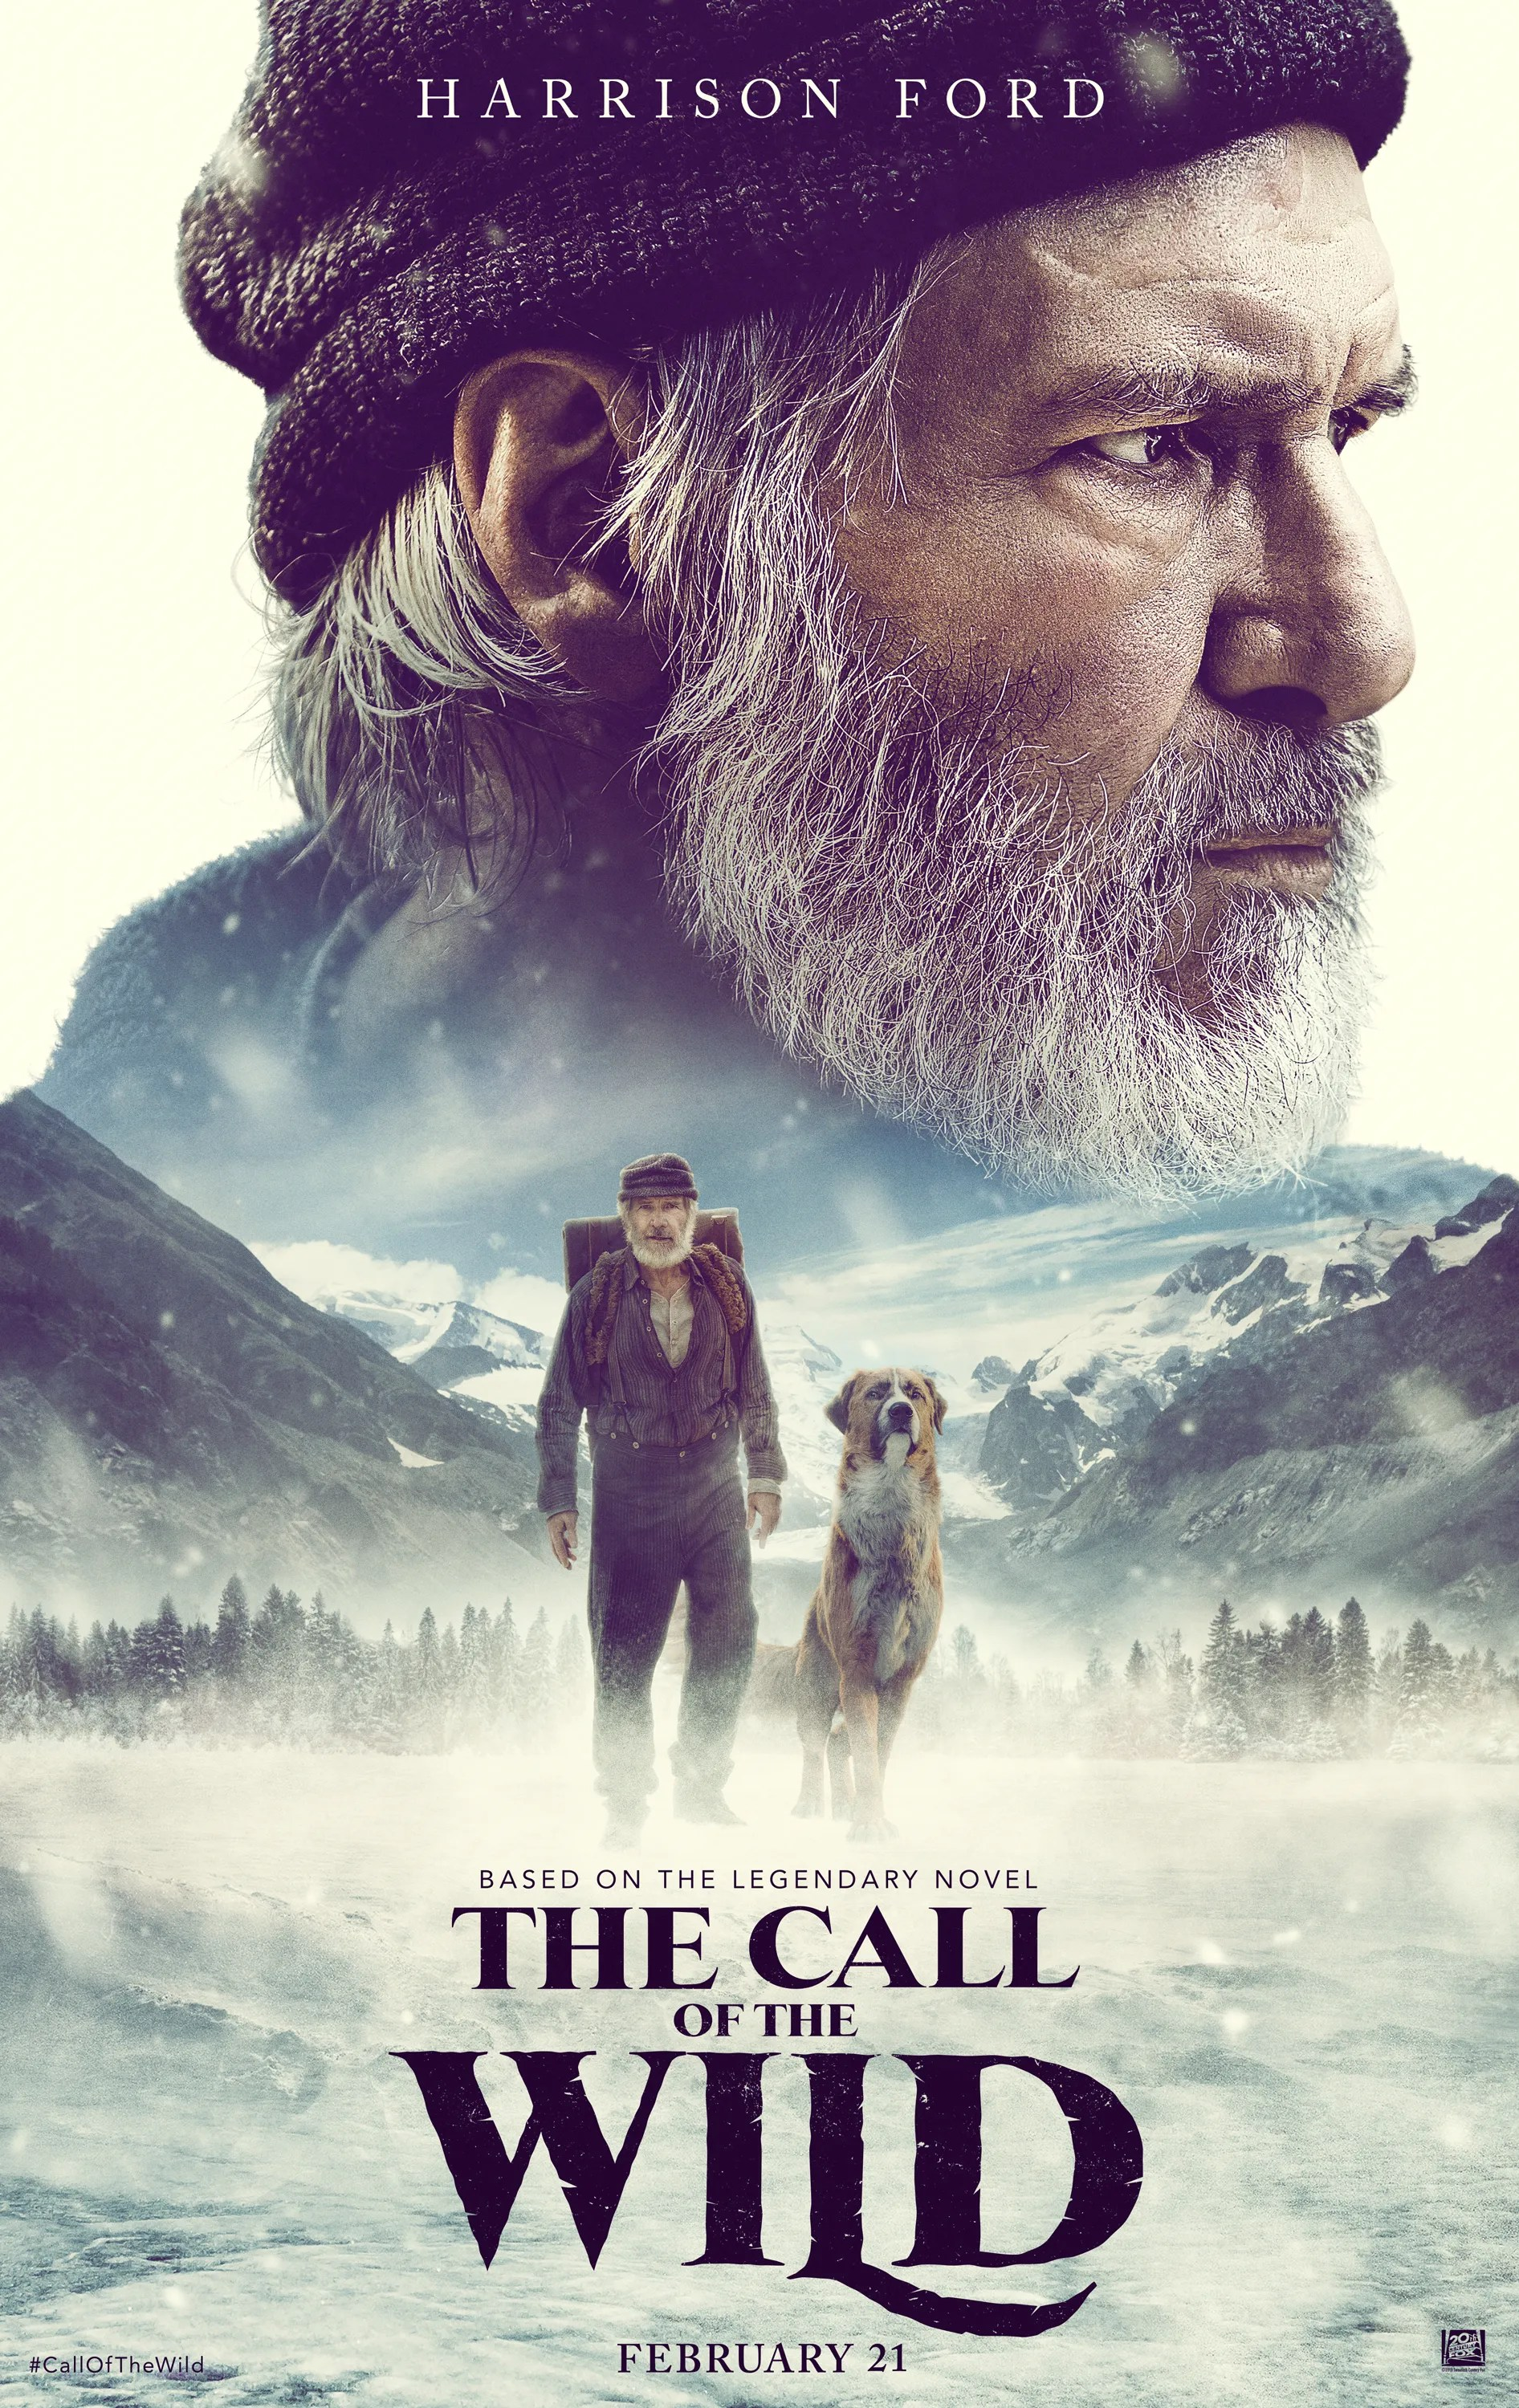 The Call Of The Wild Trailer Features Harrison Ford And A